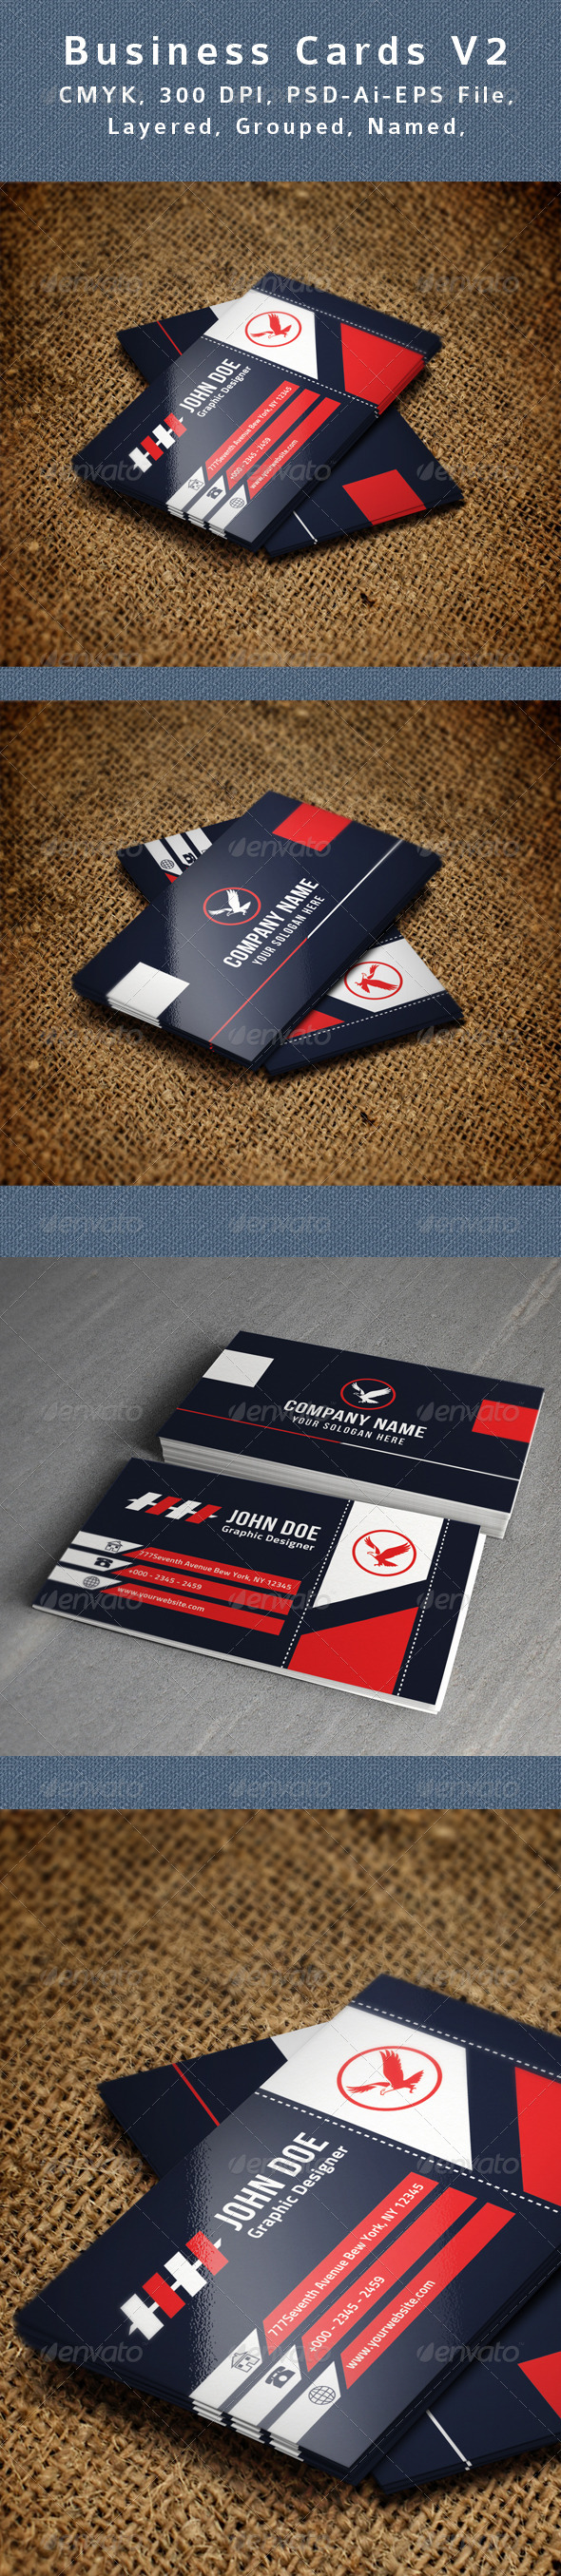 GraphicRiver Creative Business Card V3 8664728